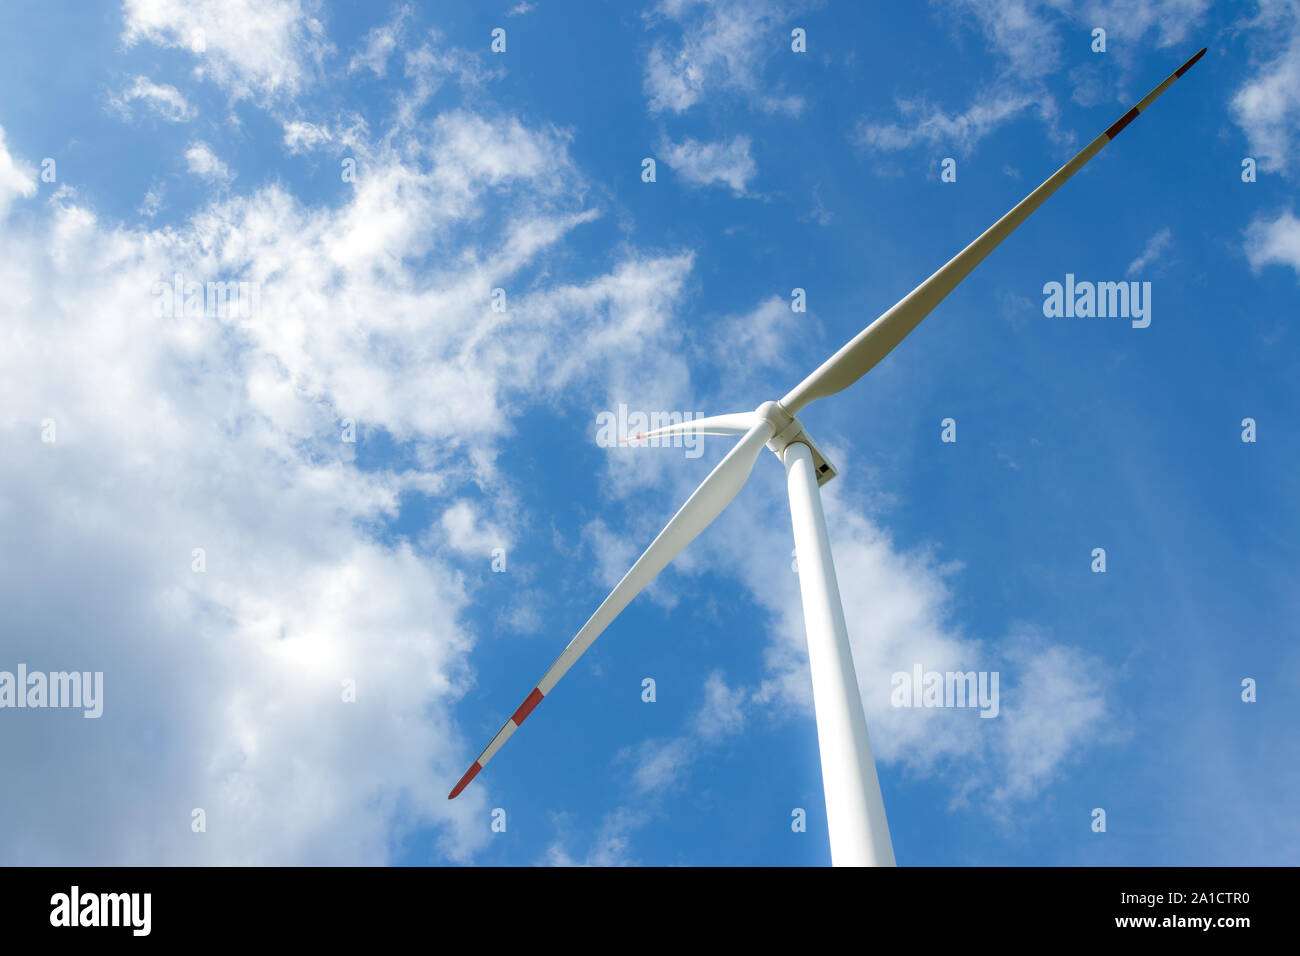 Wind turbine farm power generator in beautiful nature landscape for production of renewable green energy is friendly industry to environment. Stock Photo